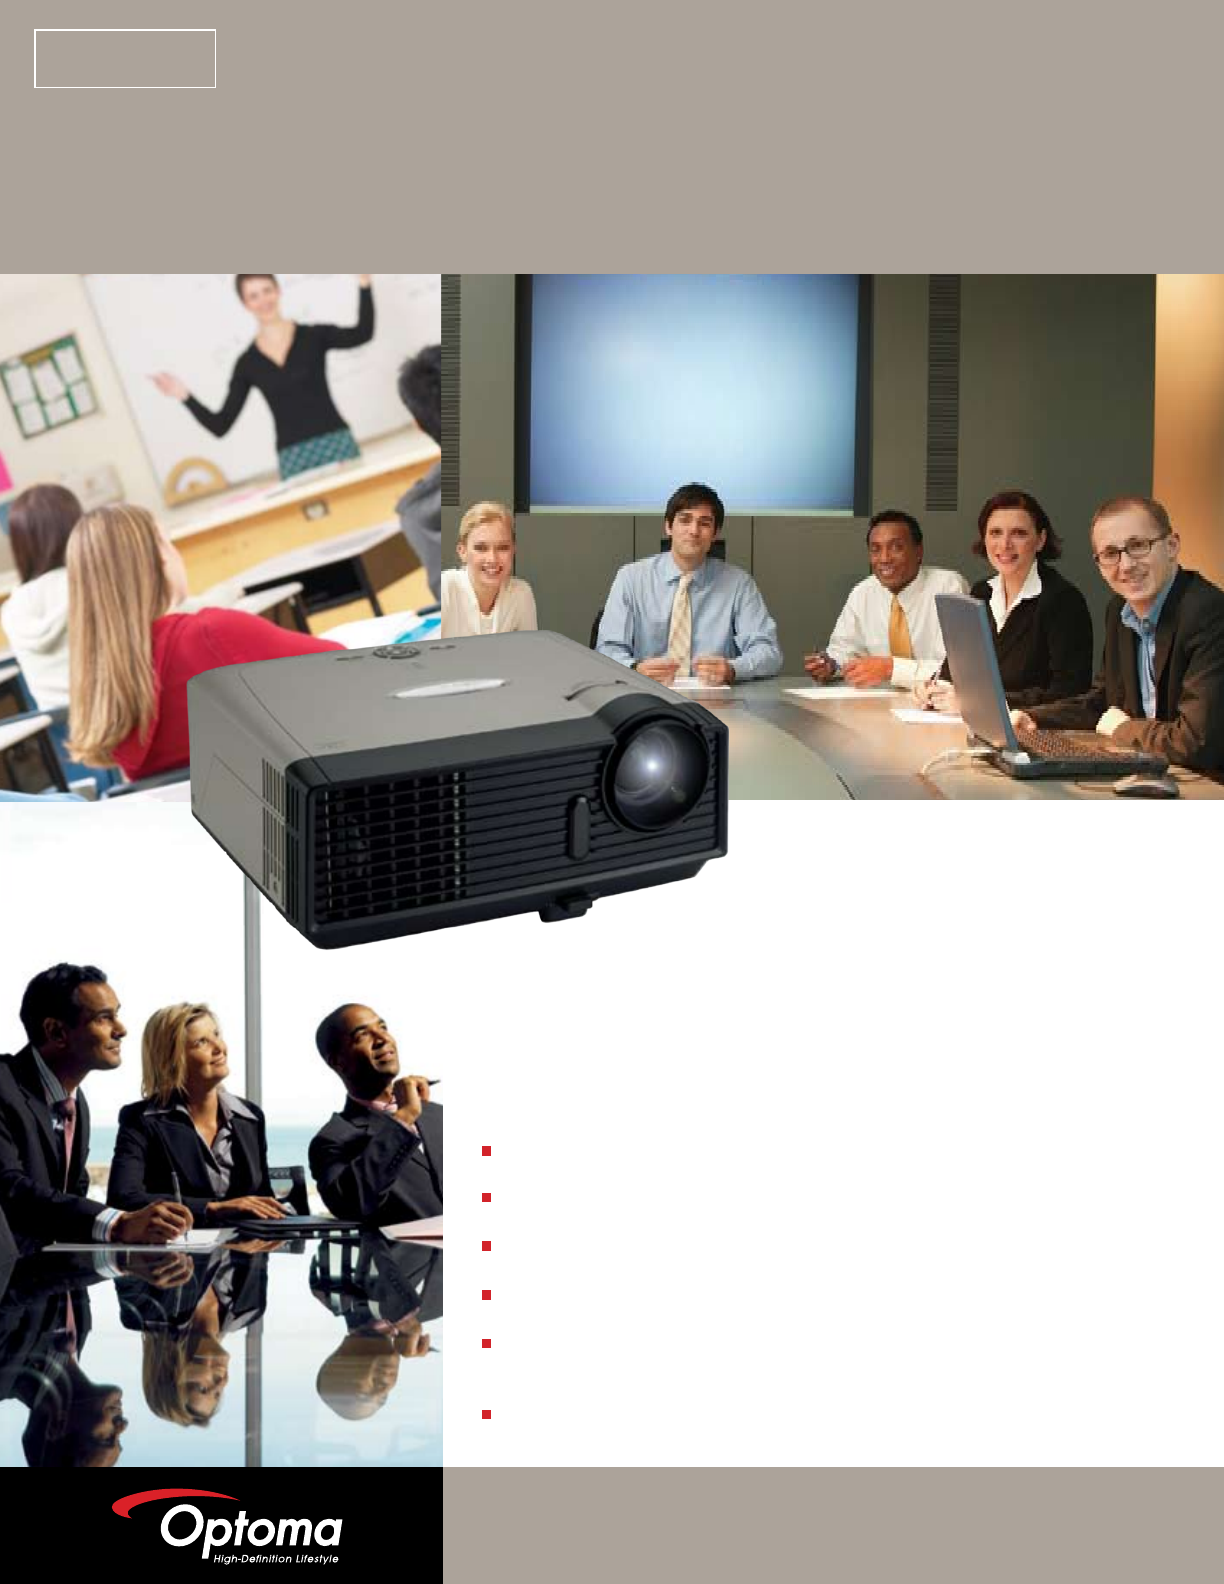 optoma technology projector ep719 user guide manualsonline com rh office manualsonline com Old Optoma DLP Projector Optoma Projector Old